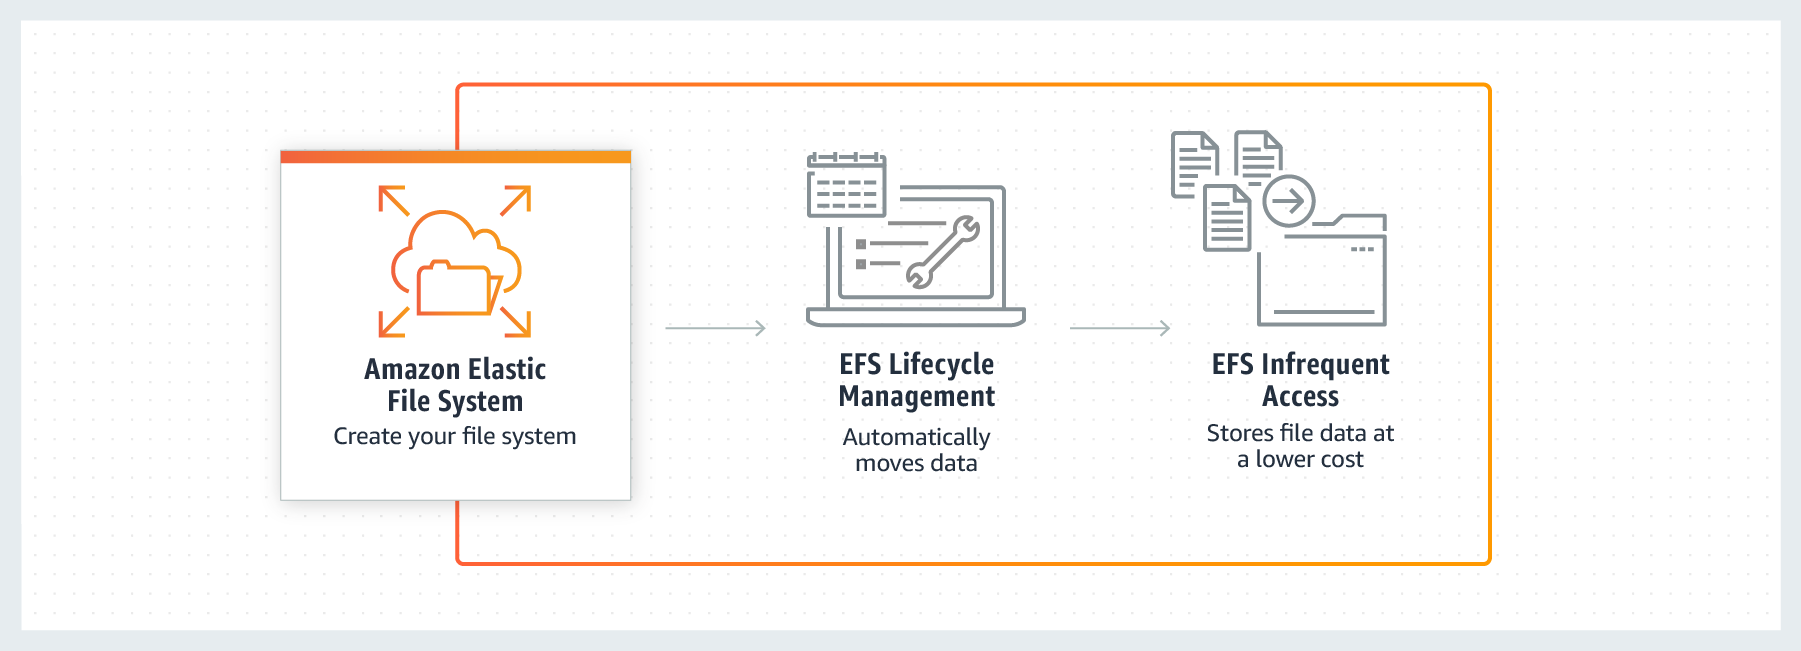 product-page-diagram-Amazon-EFS-Infrequent-Access-How-It-Works